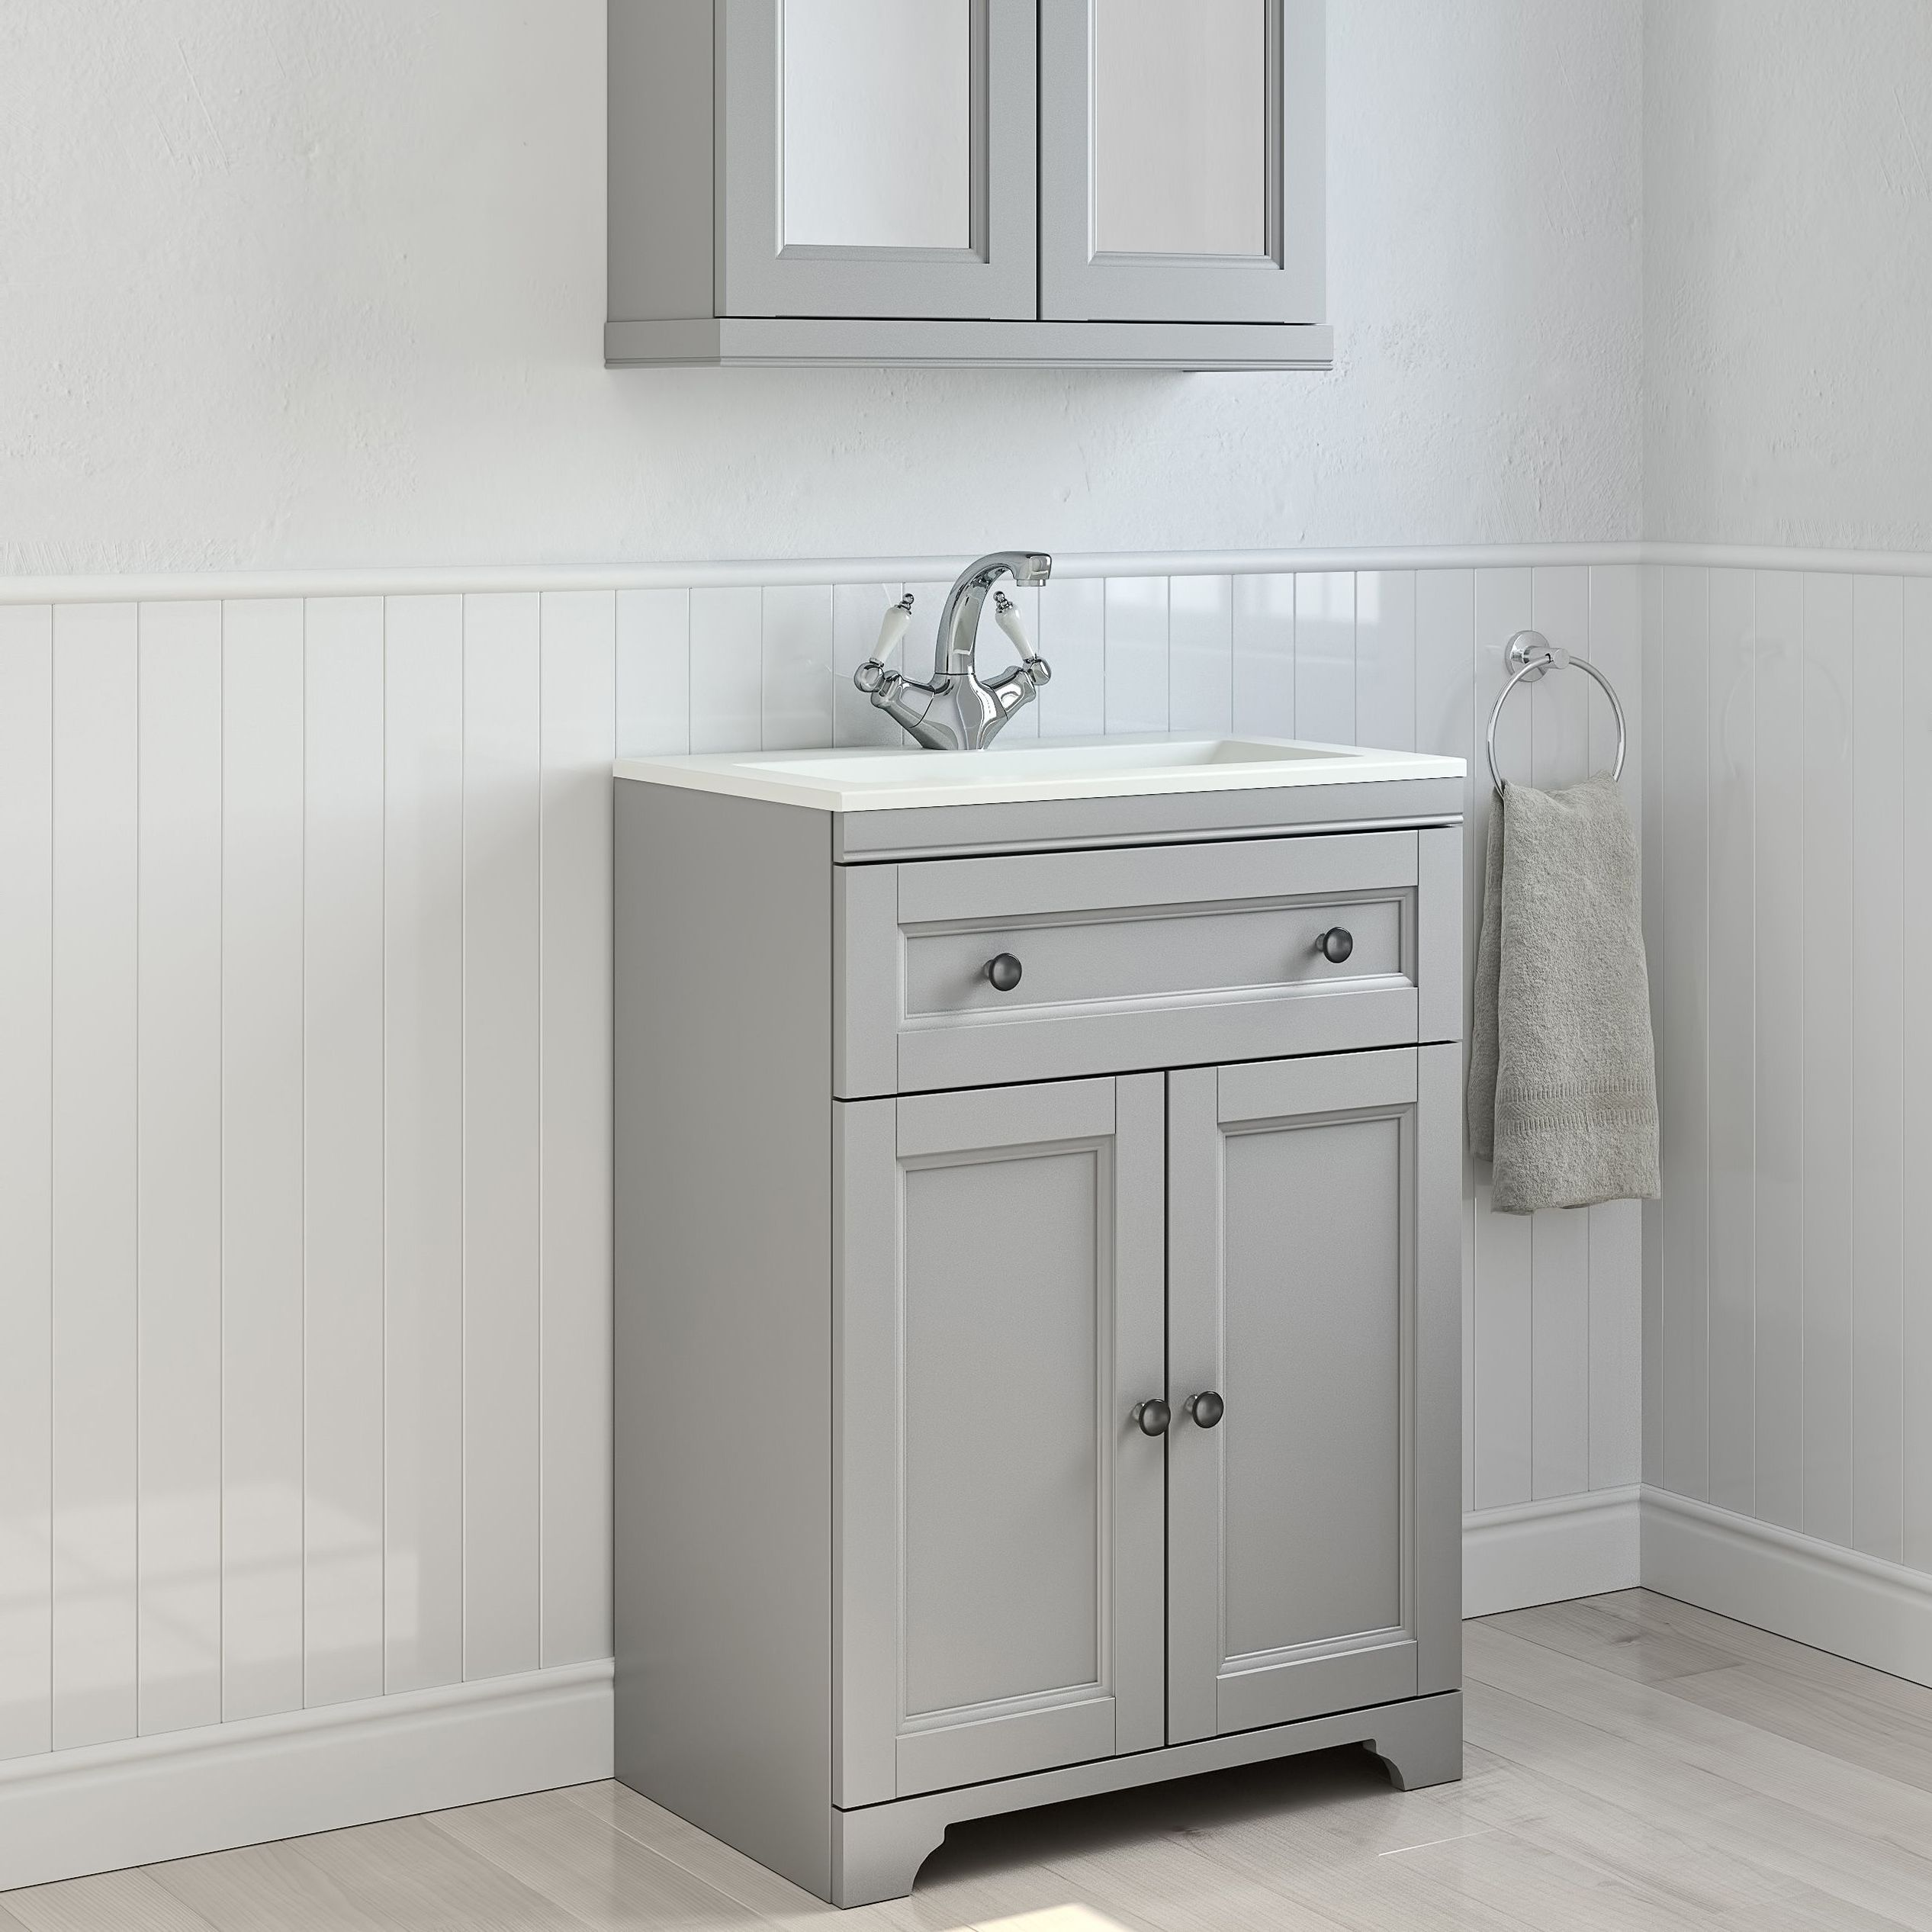 Chadleigh Freestanding Bathroom Furniture